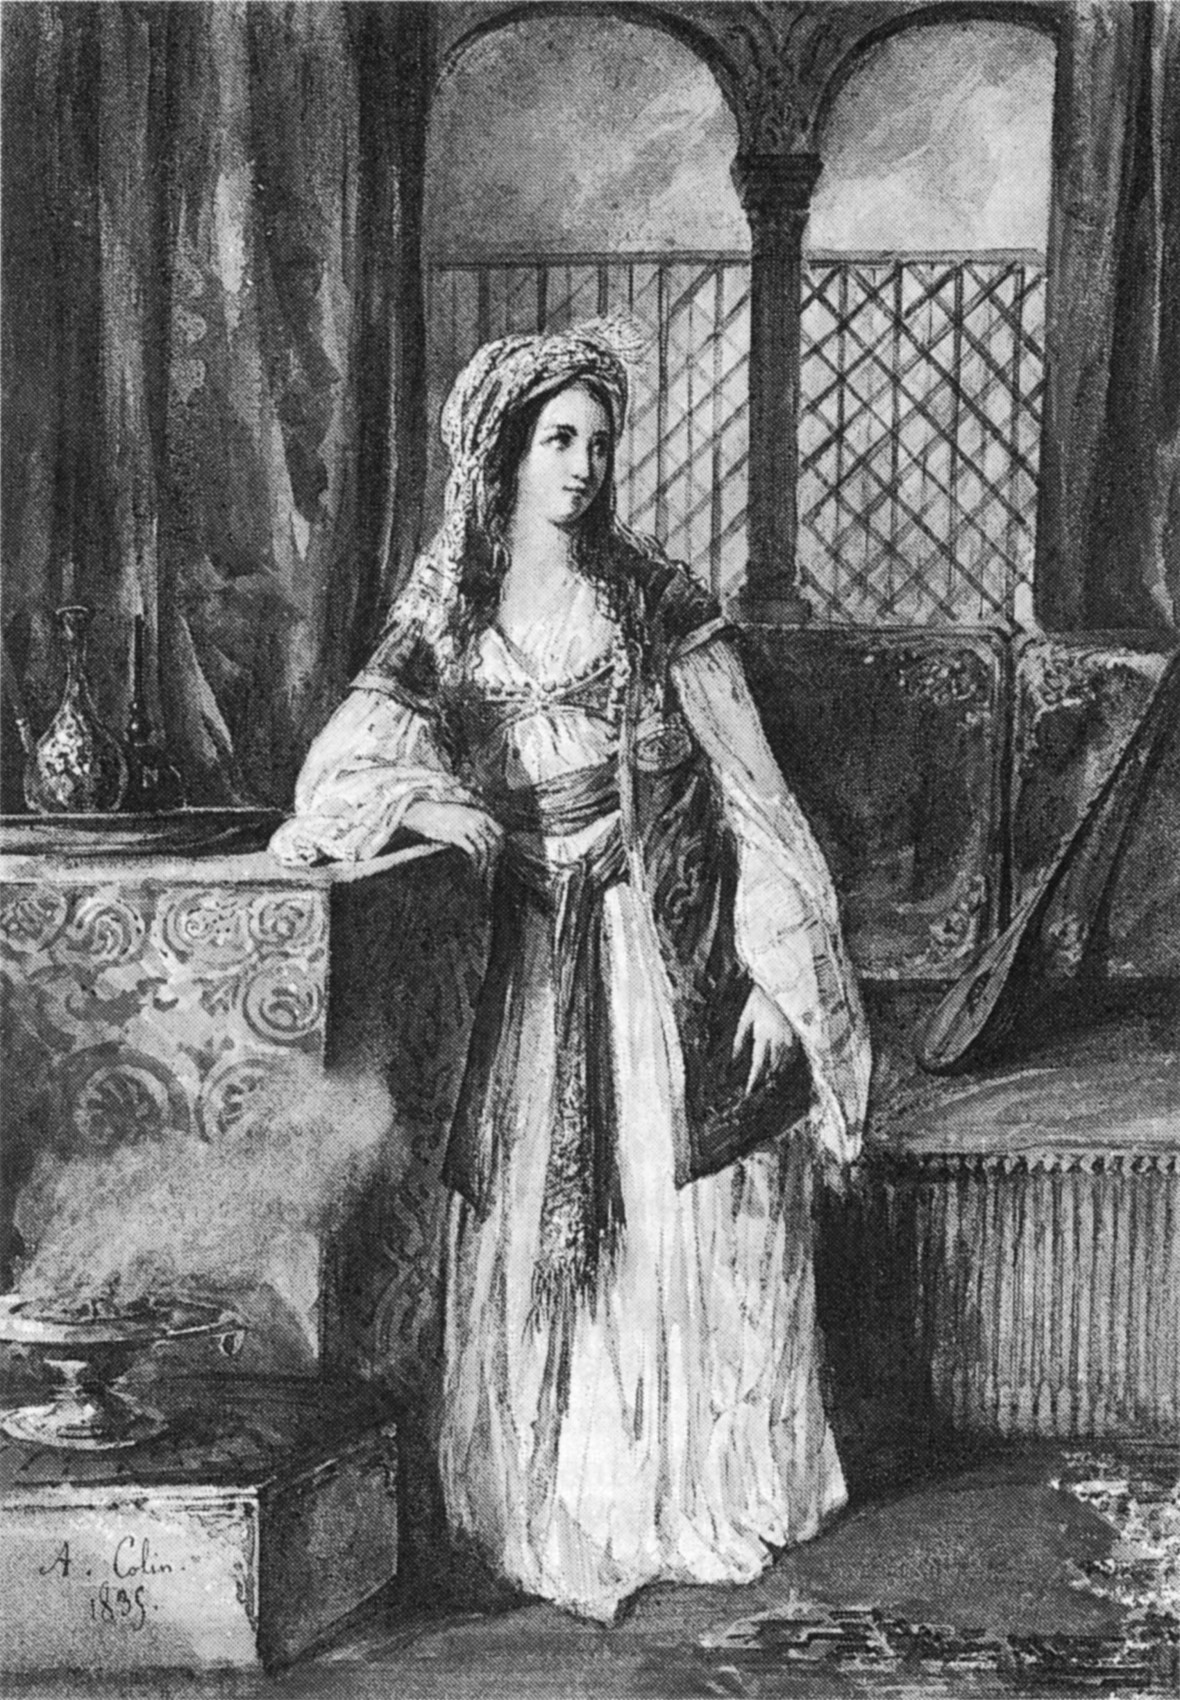 Cornelie Falcon as Rachel in La Juive by Halevy 1835 - A Colin - NGO2p110